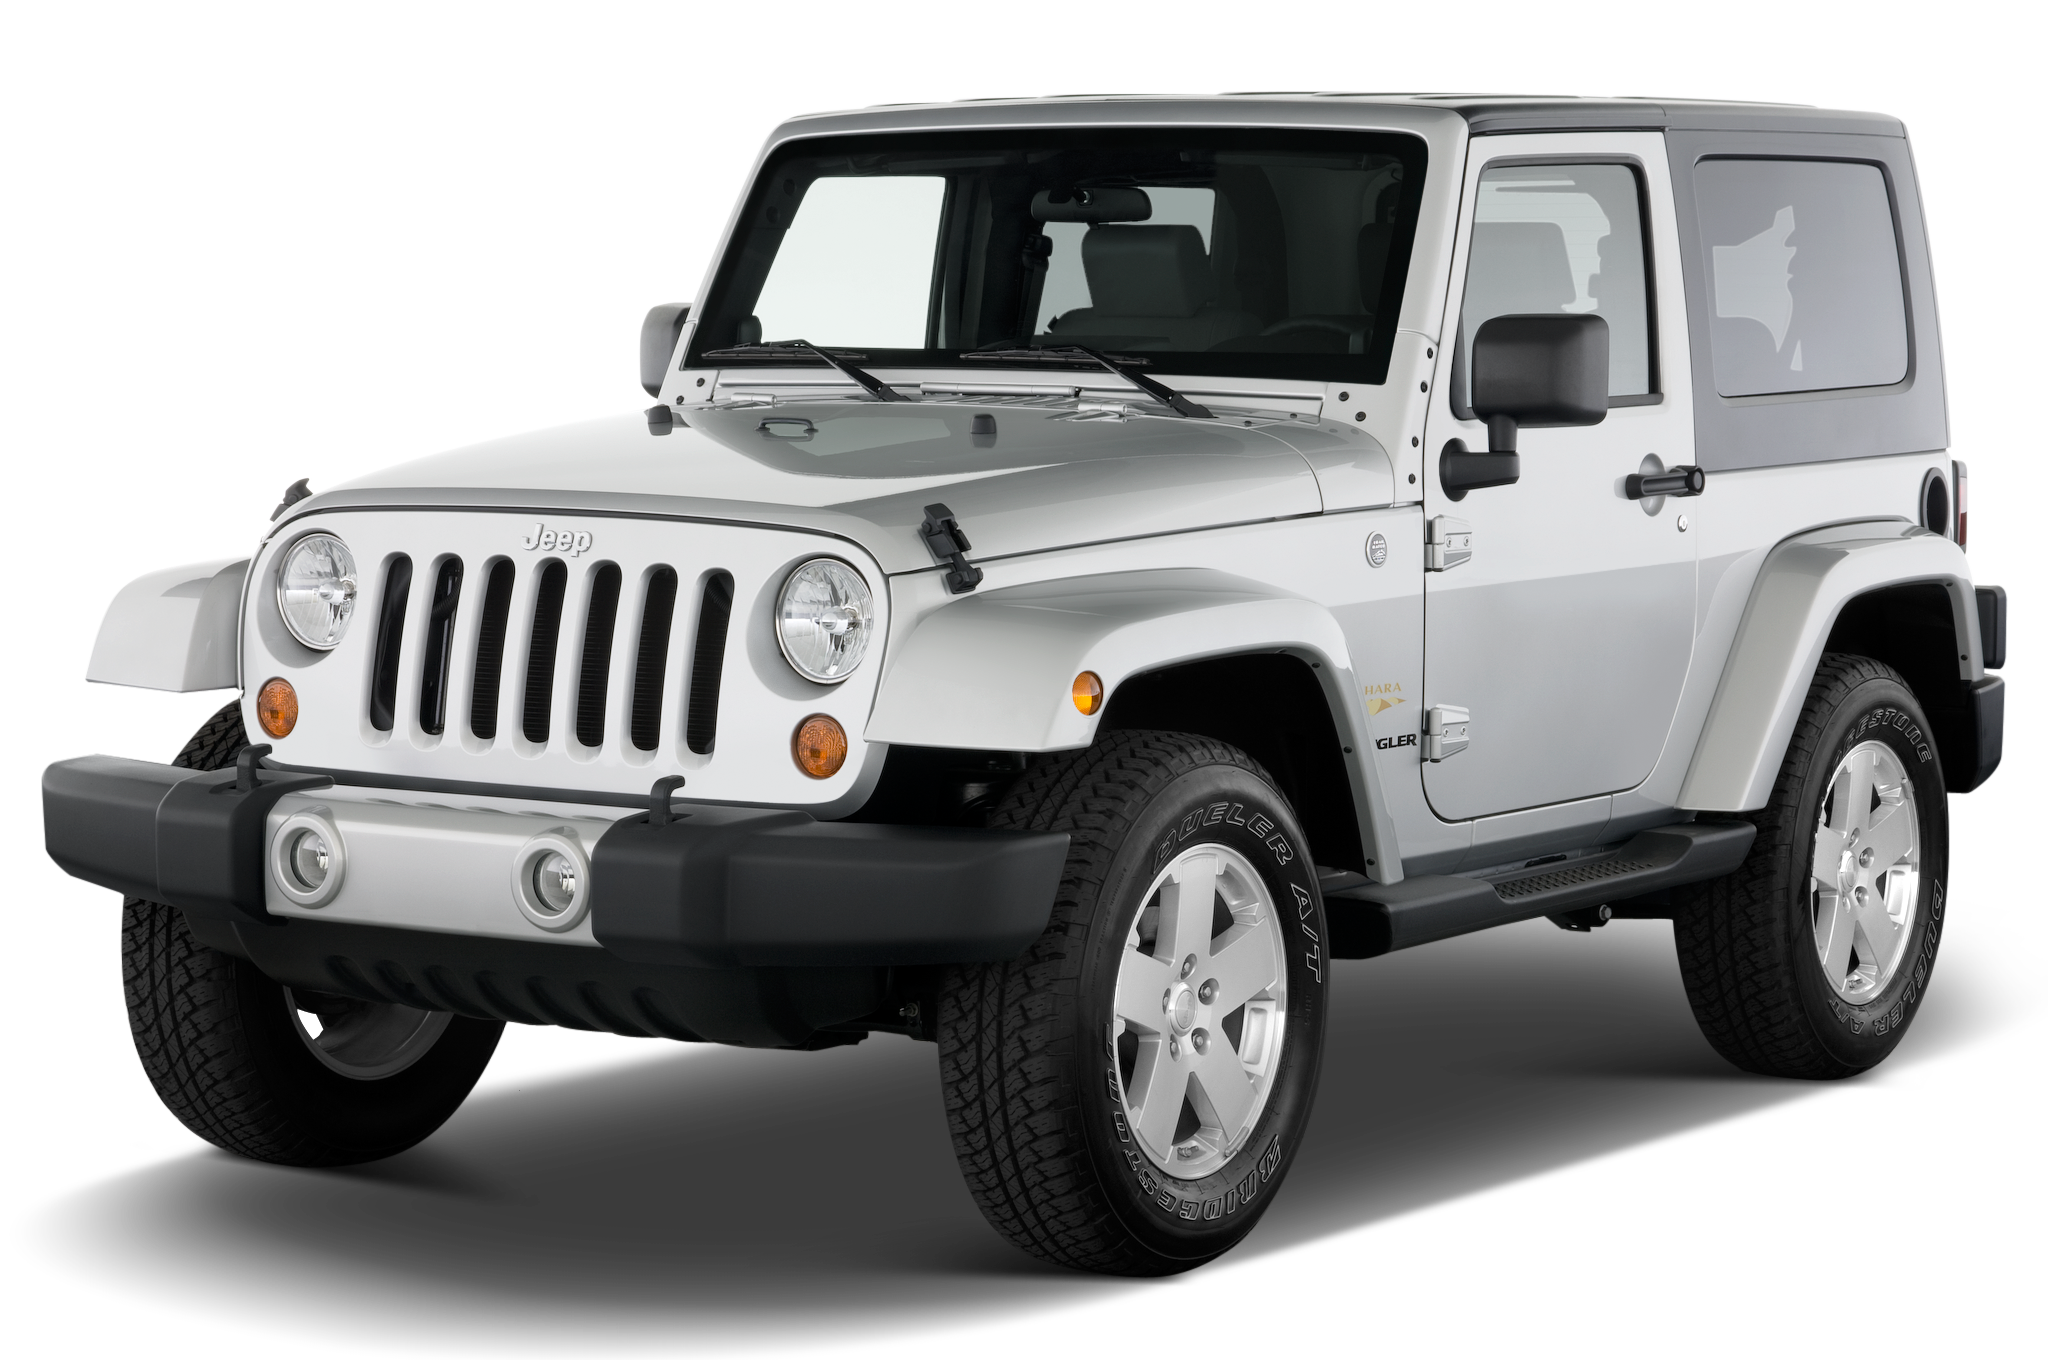 2010 Jeep Wrangler Recalled Due to Automatic Transmission ...